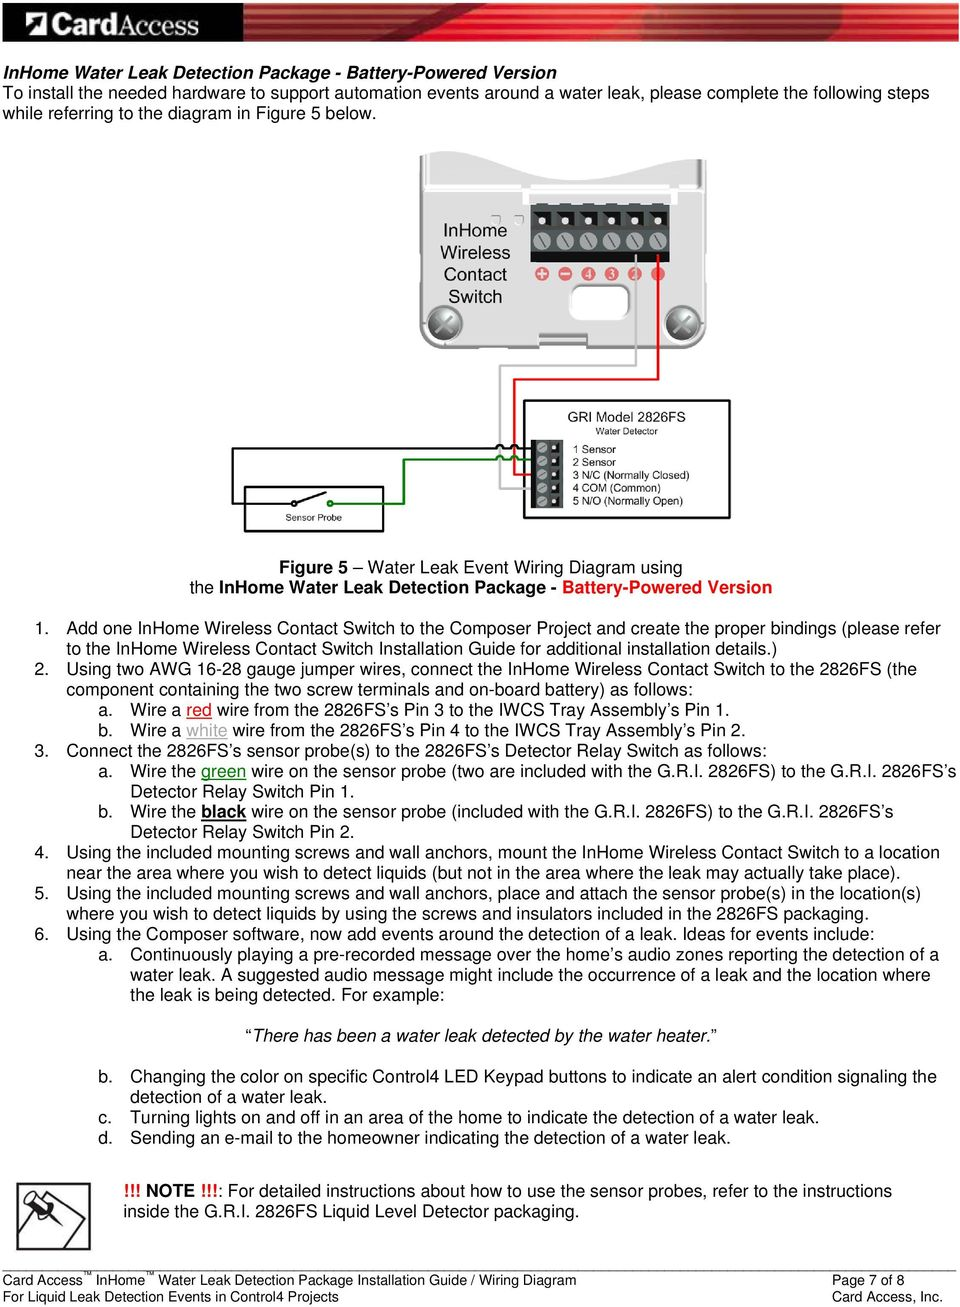 Add one InHome Wireless Contact Switch to the Composer Project and create the proper bindings (please refer to the InHome Wireless Contact Switch Installation Guide for additional installation